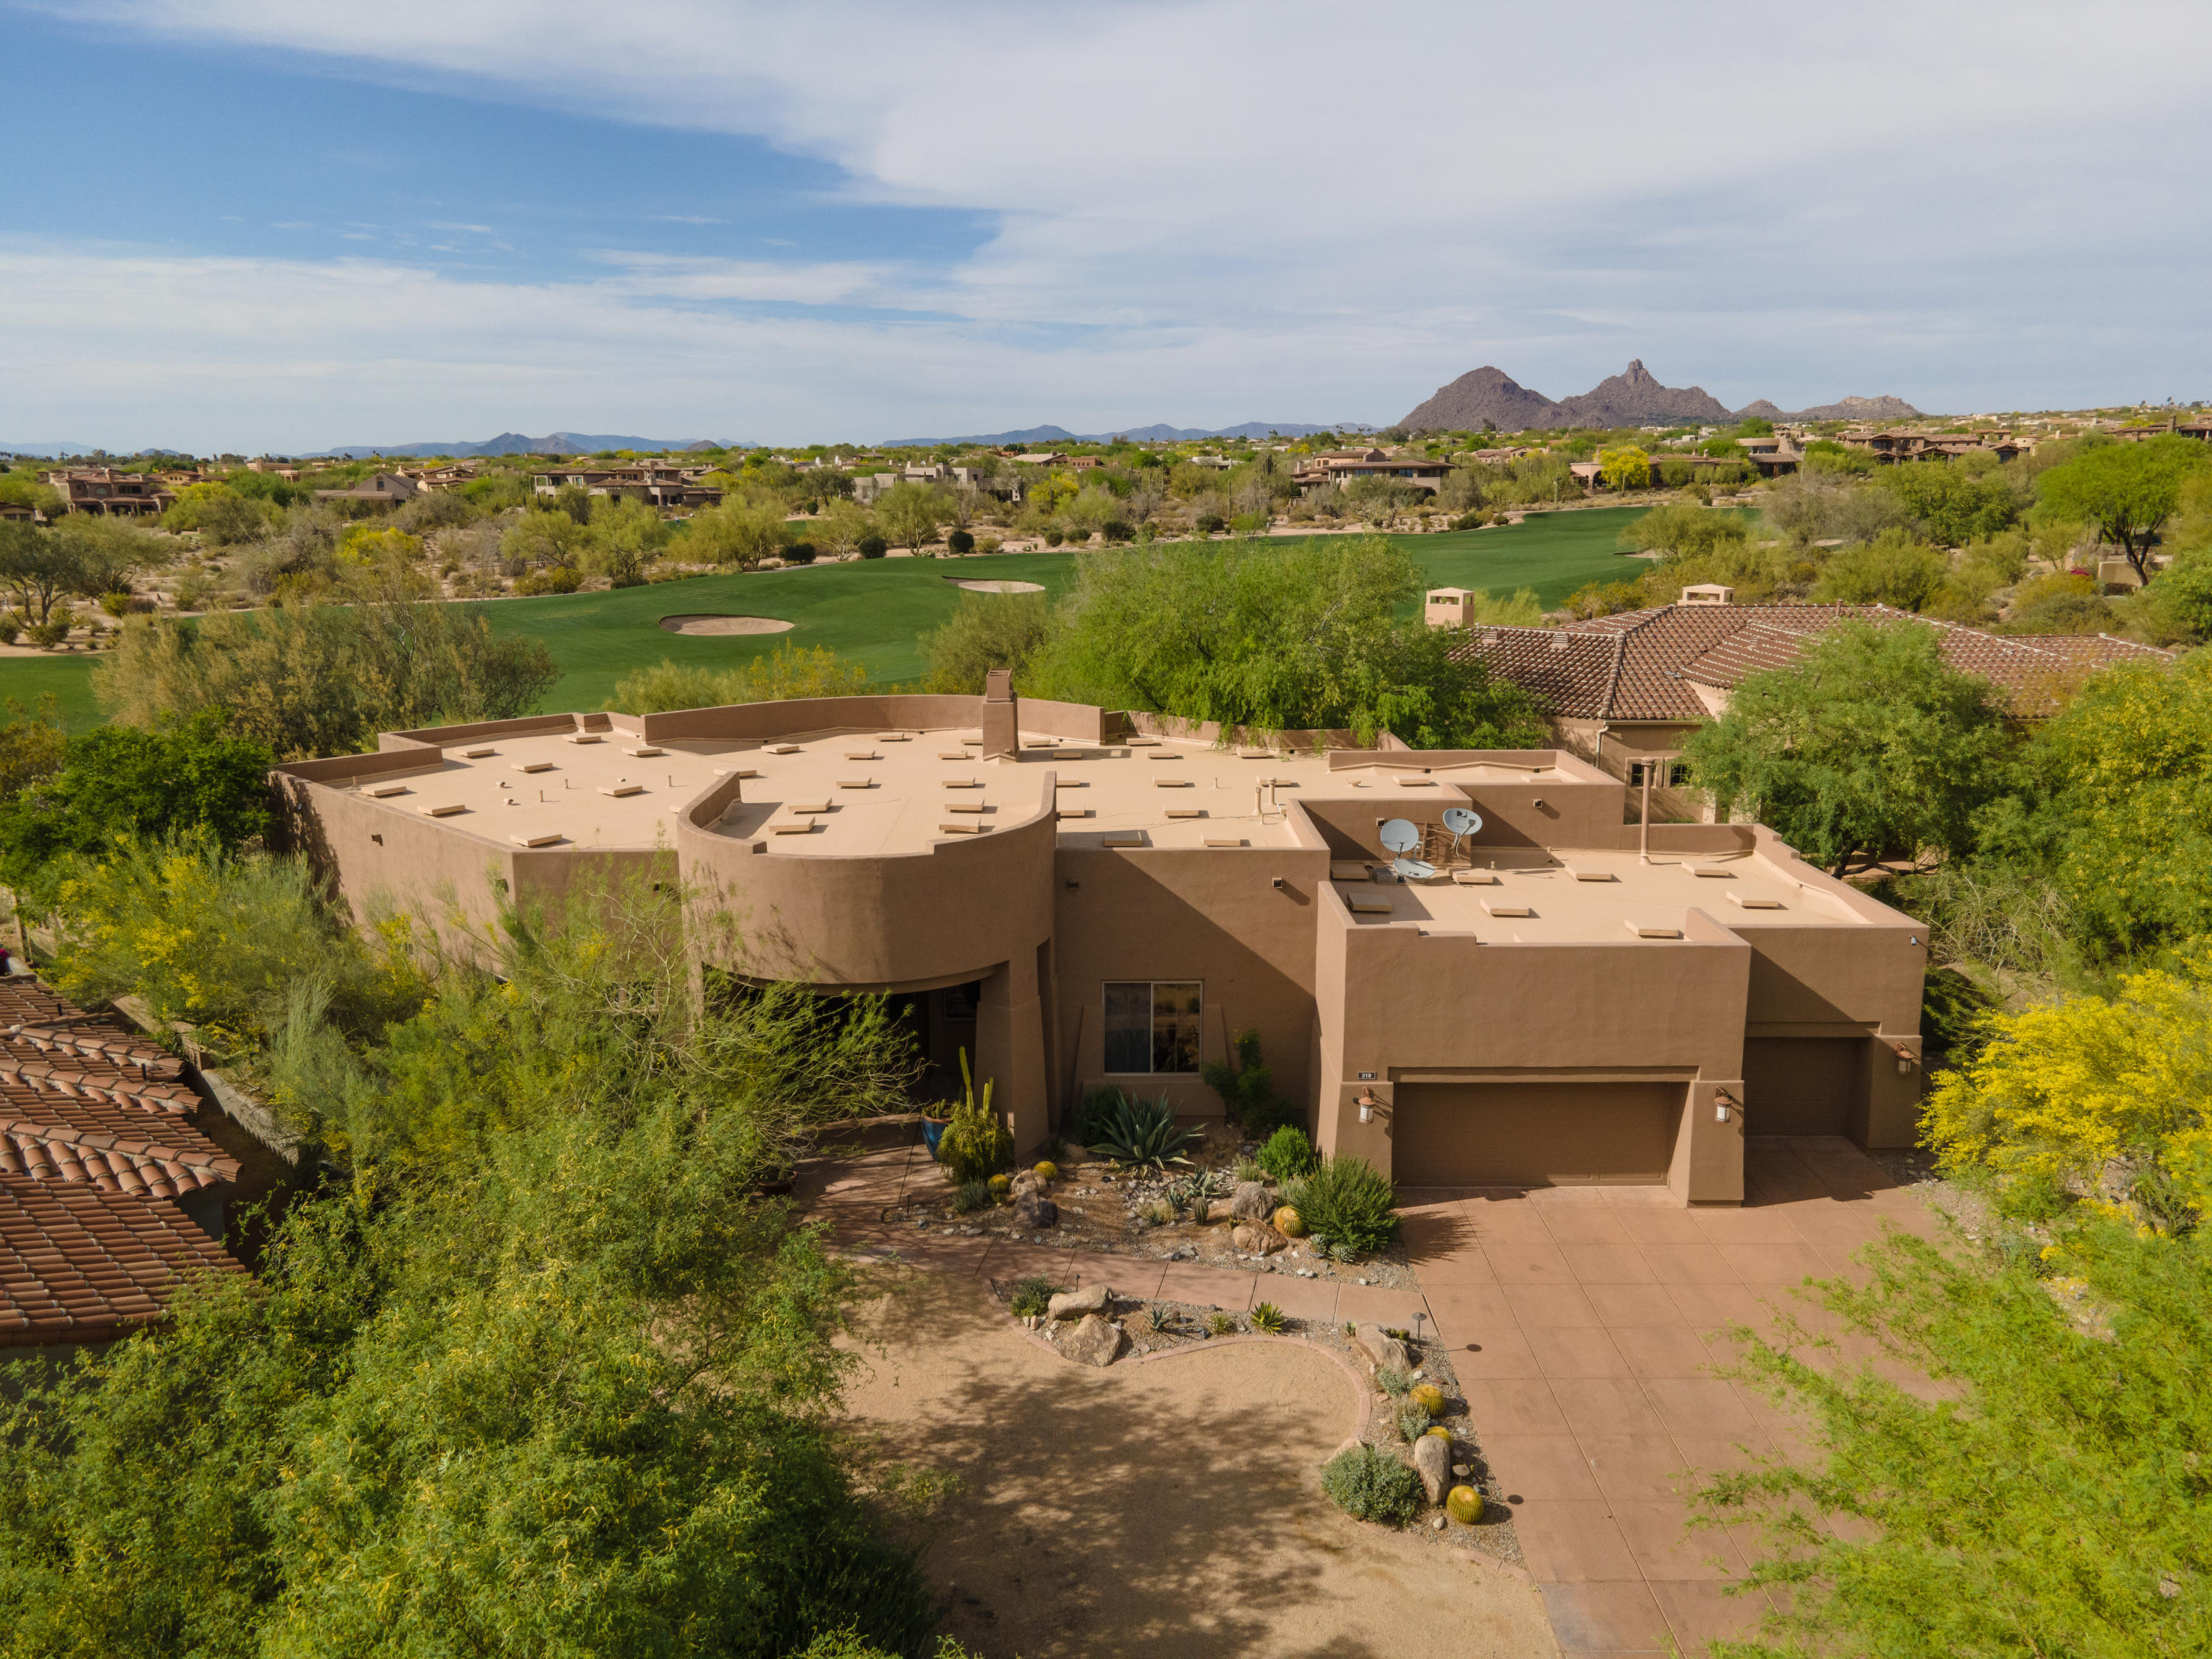 Spectacular golf course lot in prestigious DC Ranch Country Club! This beautiful home sits  on the 4th hole with gorgeous mountain views. Ideal floor plan with spacious master split, home office or work out room and 2 guest rooms with en-suite baths. Great room w/ gourmet eat-in kitchen, large island with seating, and 100 bottle wine fridge. Formal living, dining room and wet bar. All living areas and master open to the low maintenance backyard which is an entertainer's dream. Huge flagstone covered patio, pebble tec heated pool and elevated spa. Built in BBQ w/ bar seating, and cozy fire pit for those brisk winter nights.  Perfect lock and leave opportunity w/ turf and natural desert landscaping. Walking paths to Country Club & DC Ranch Marketplace. Floorplan in documents.